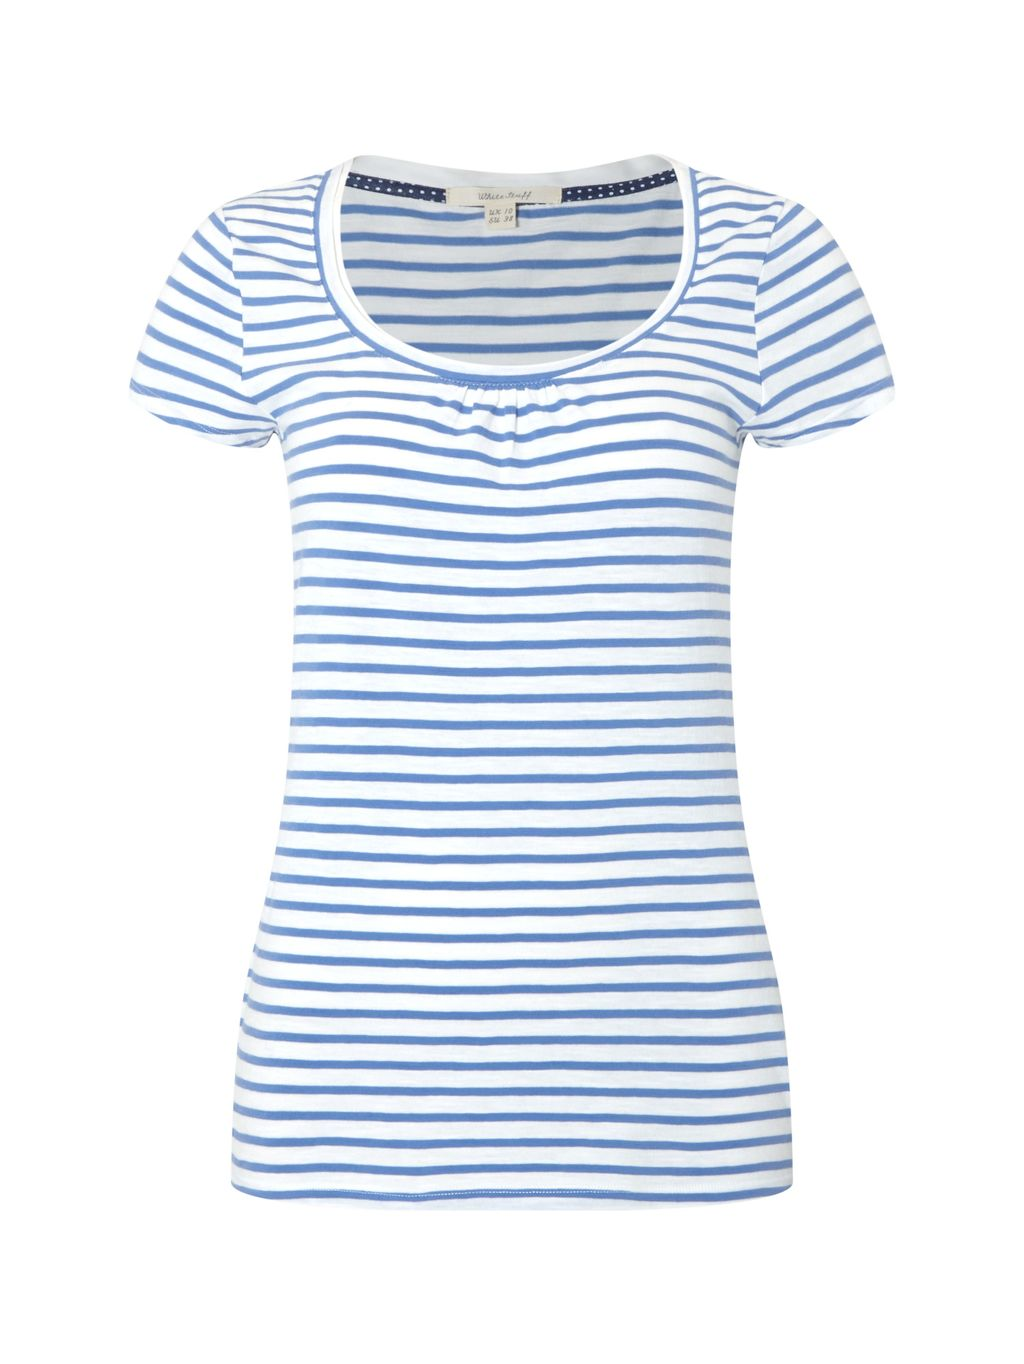 Ava Stripe Jersey Tee, Blue - sleeve style: capped; pattern: horizontal stripes; style: t-shirt; predominant colour: white; secondary colour: pale blue; occasions: casual; length: standard; neckline: scoop; fibres: cotton - stretch; fit: body skimming; sleeve length: short sleeve; texture group: jersey - clingy; pattern type: fabric; pattern size: standard; season: s/s 2016